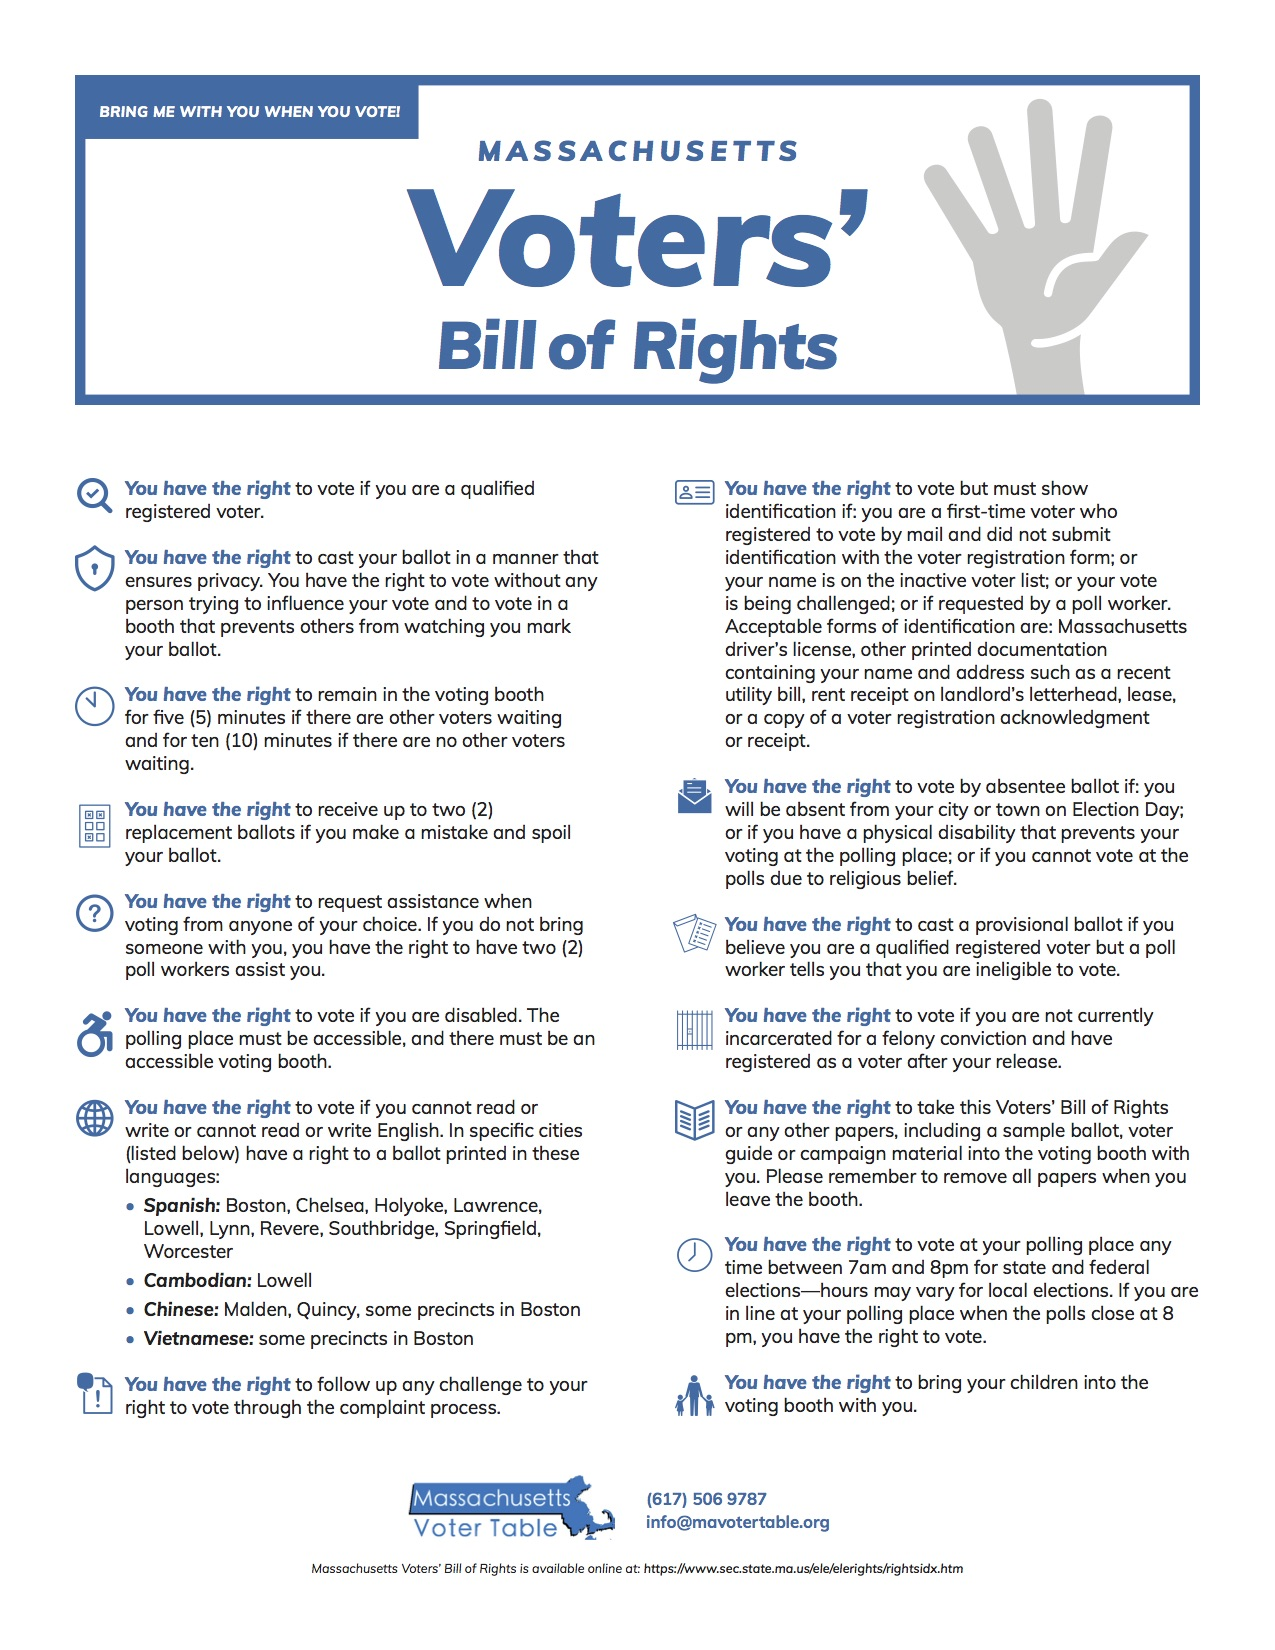 MA-Voter-Table-Know-Your-Rights-letter-v2 (1).jpg